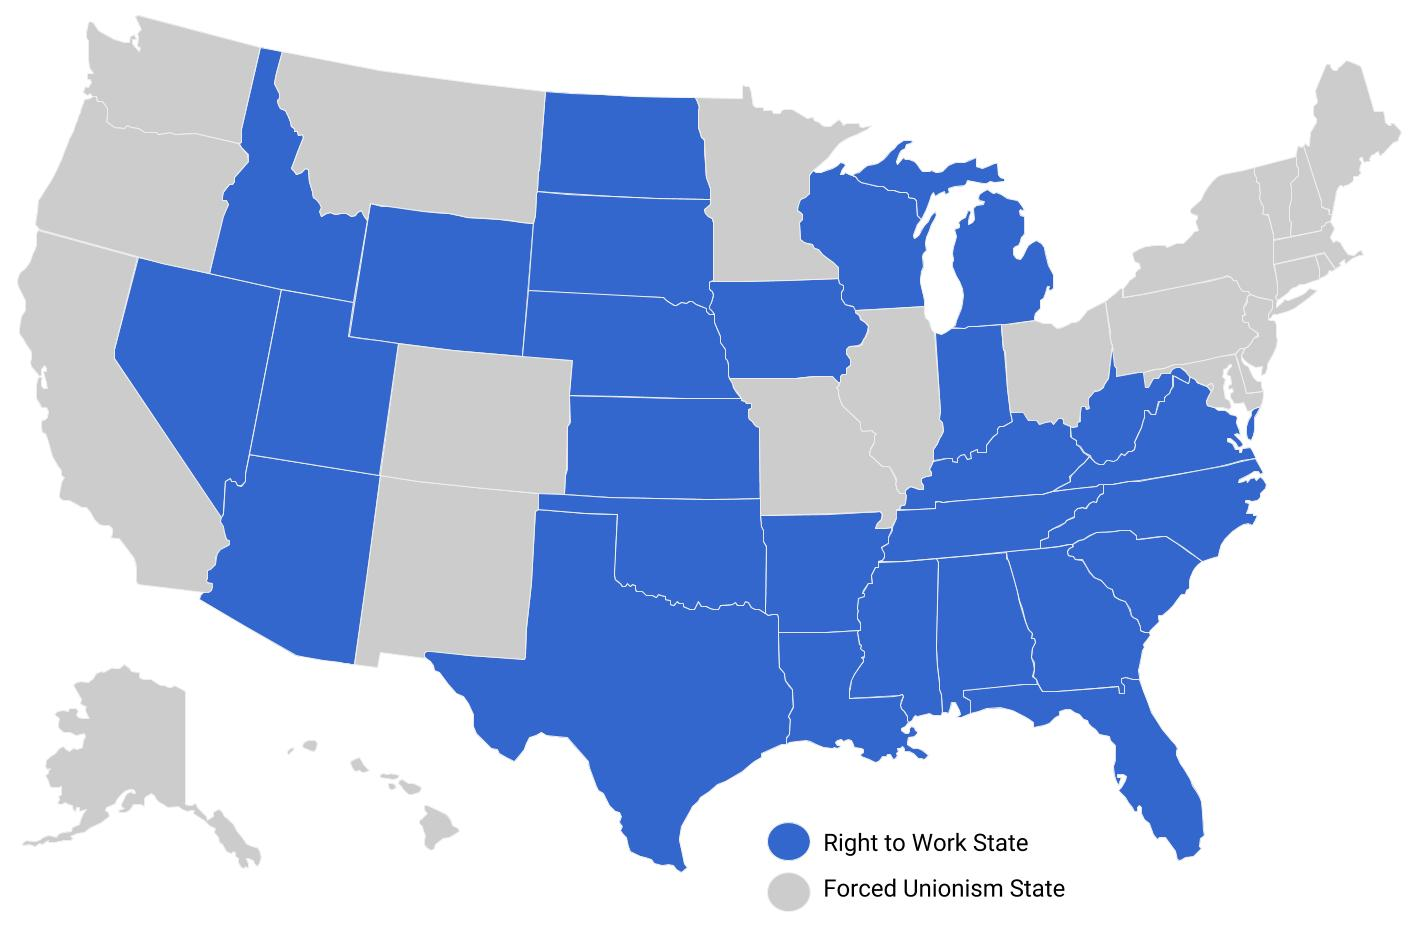 Labor Union States Map.National Right To Work Foundation Right To Work States